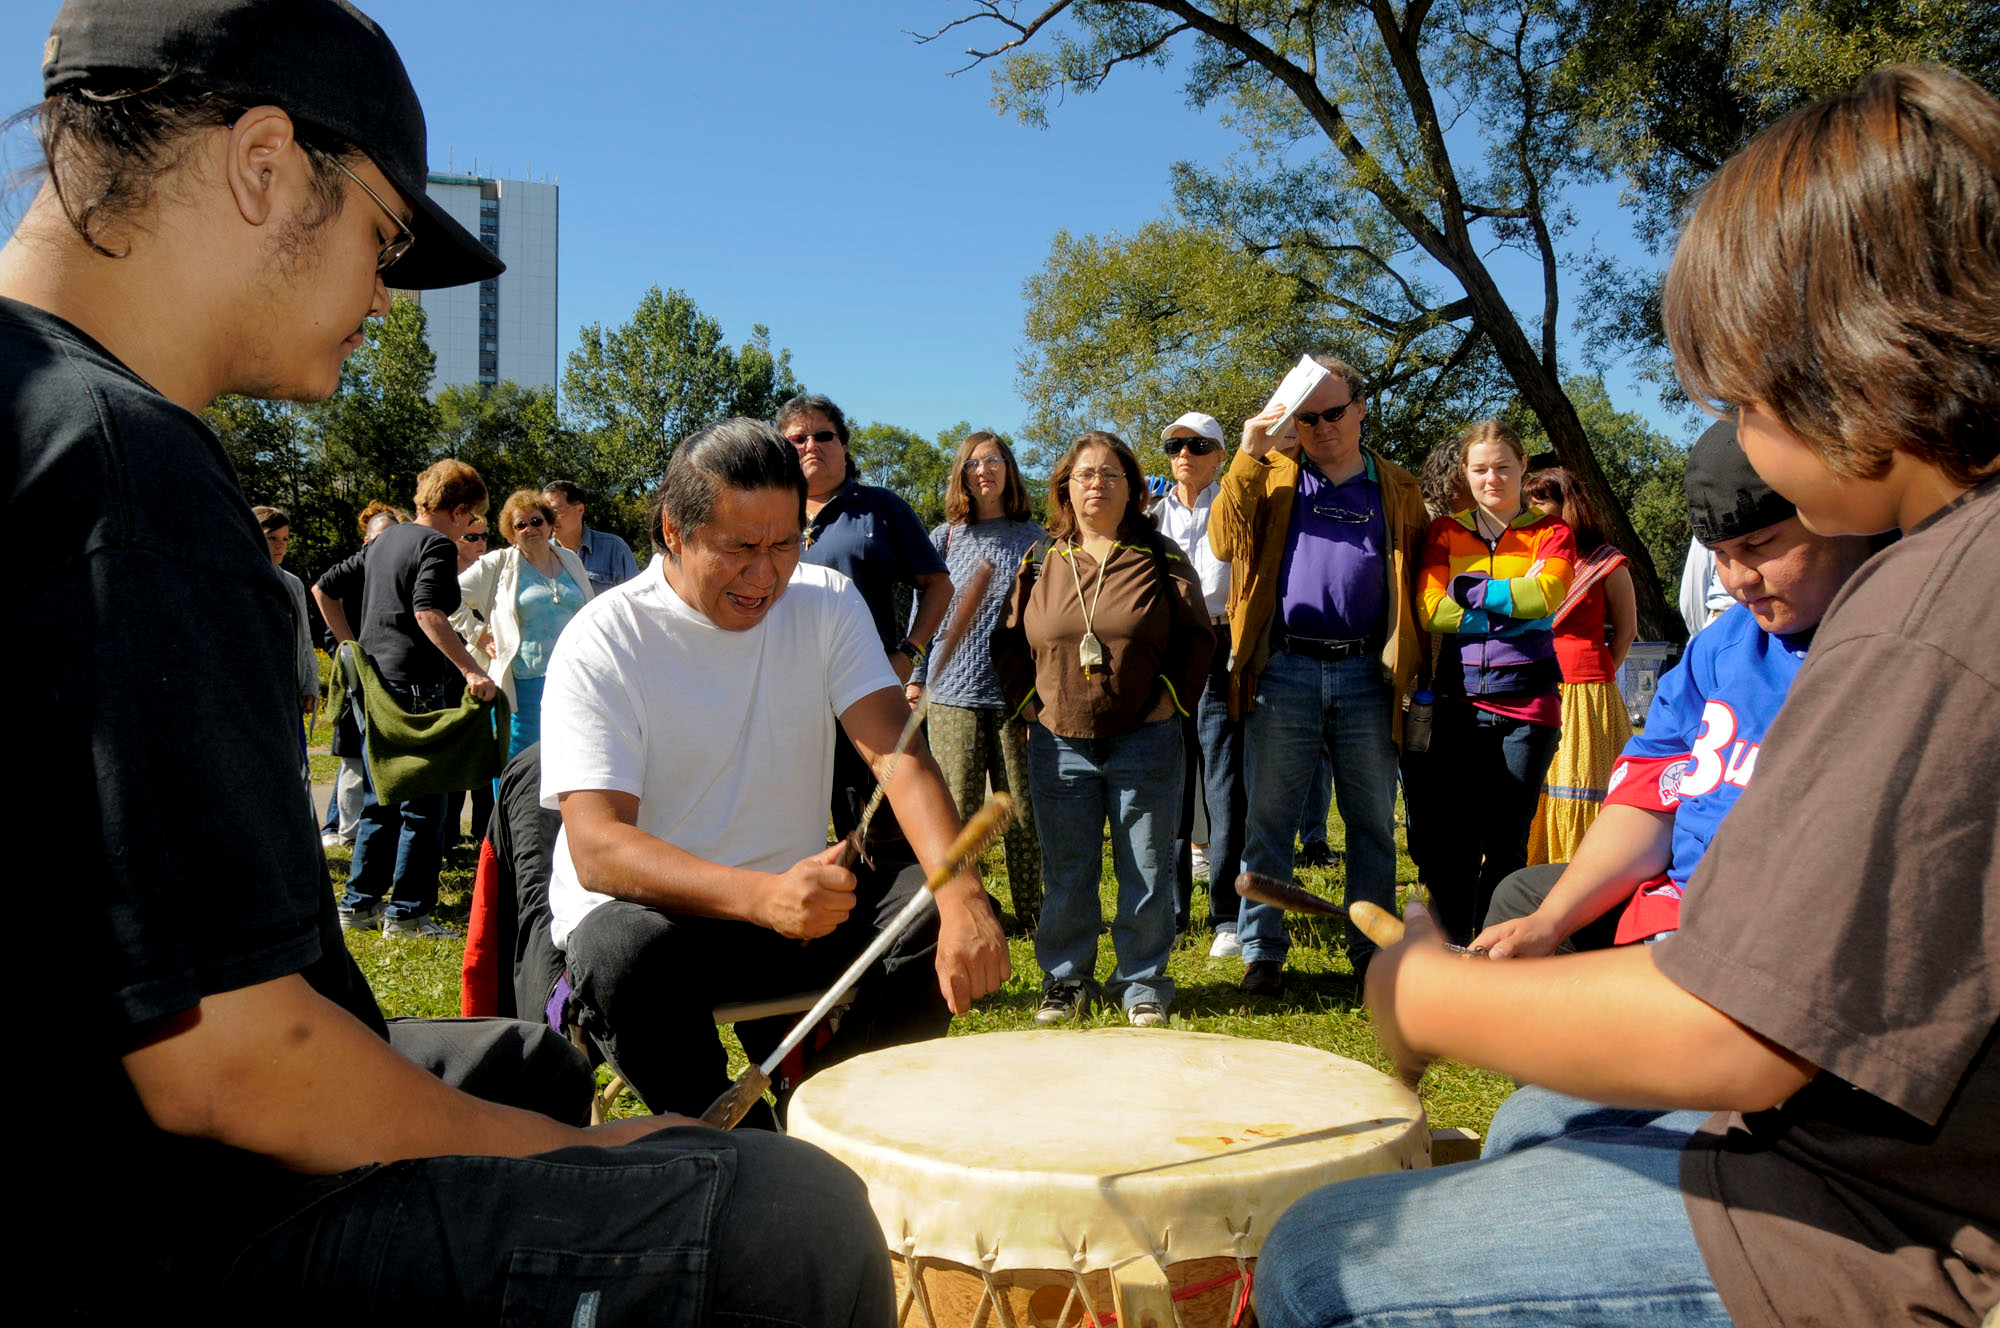 The Humber's Canadian Heritage River designation: 10th anniversary celebration with first nations drummers